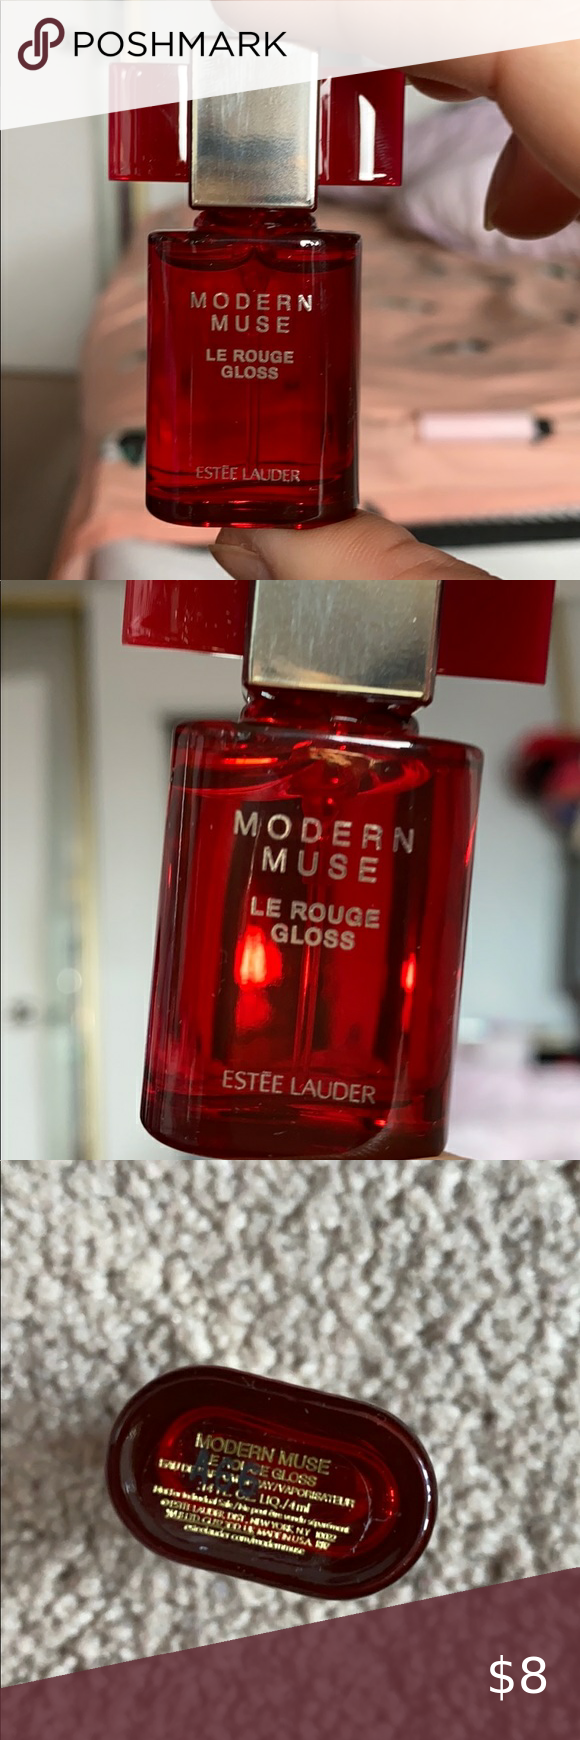 Estee Lauder Modern Muse Le Rouge Gloss Mini Size 4ml New Never Used Estee Lauder Other In 2020 Estee Lauder Modern Muse Modern Muse Le Rouge Gloss Estee Lauder